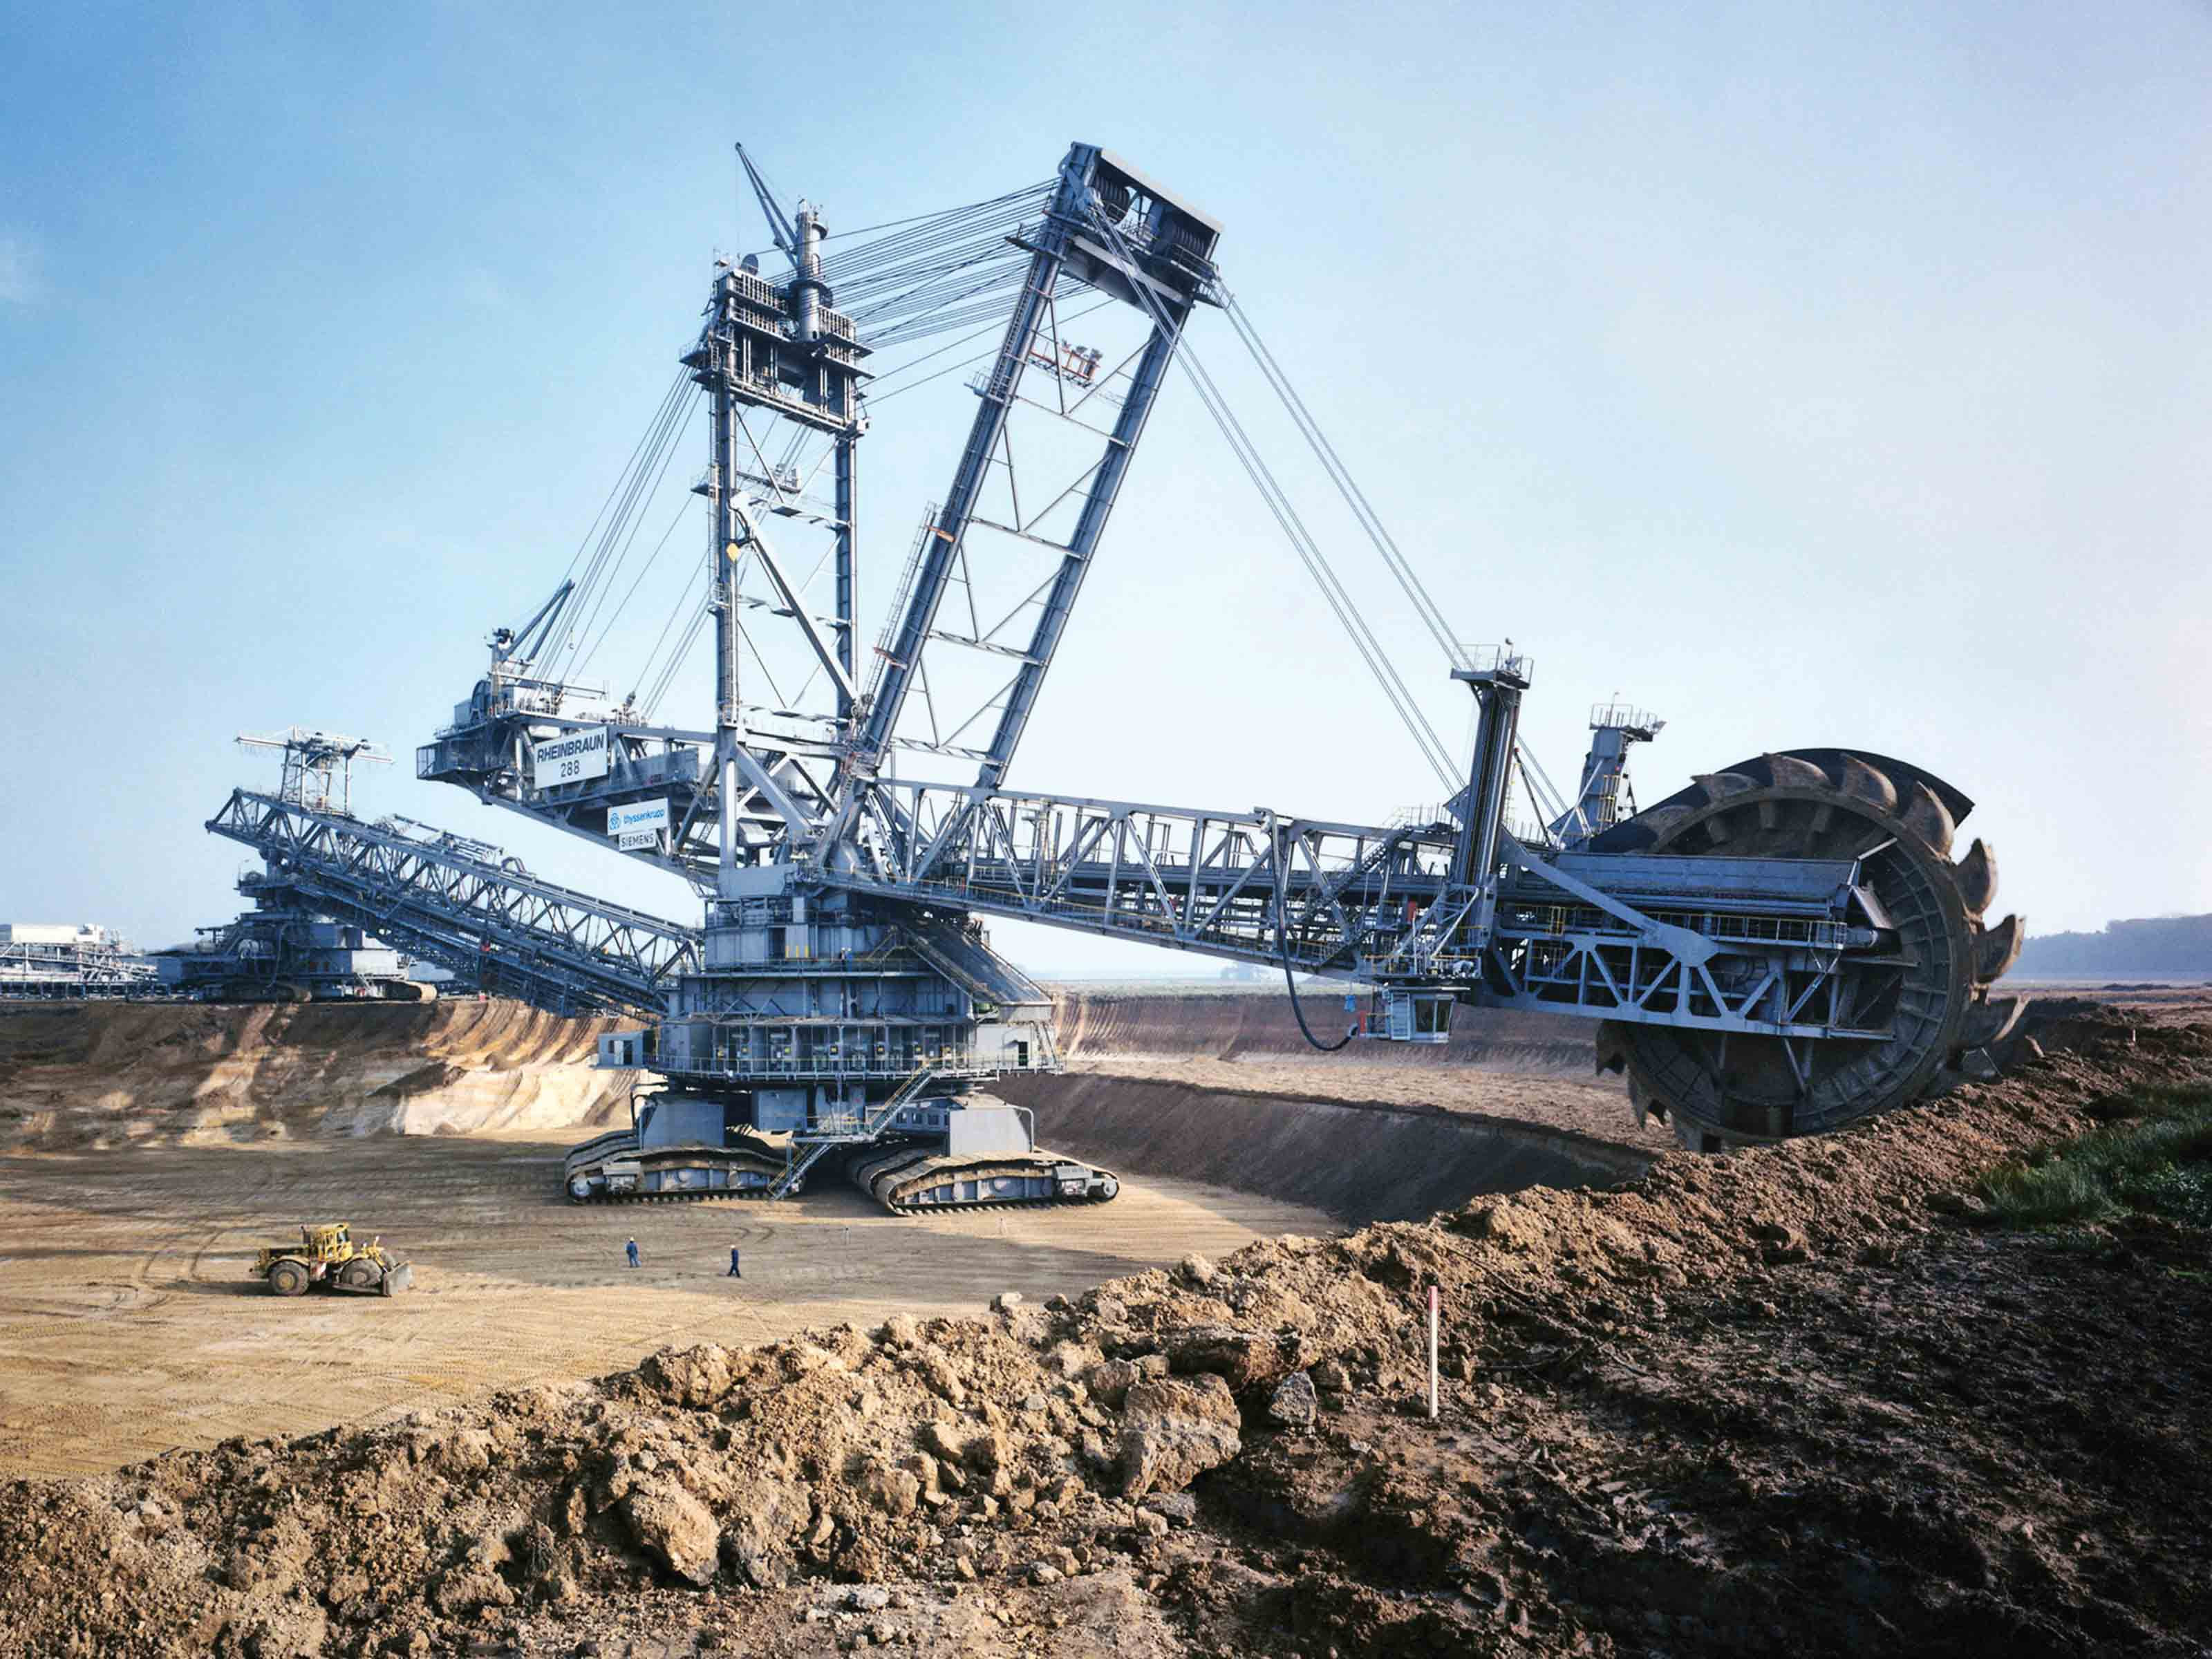 This Excavator Is One Of The Largest Land Vehicles On Earth Popular Science